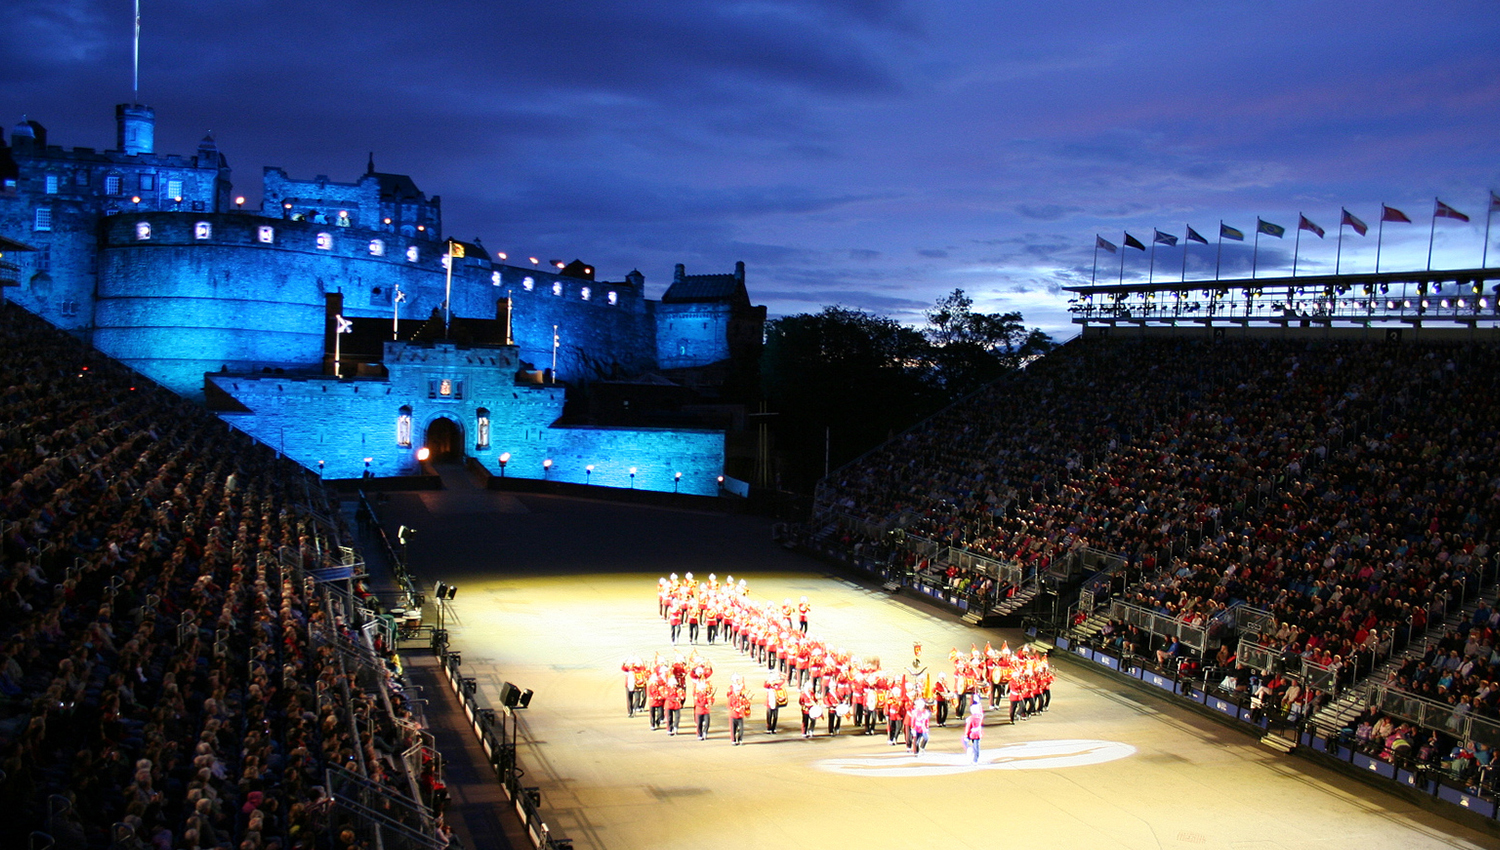 The royal edinburgh military tattoo book tickets tours for Royal edinburgh military tattoo